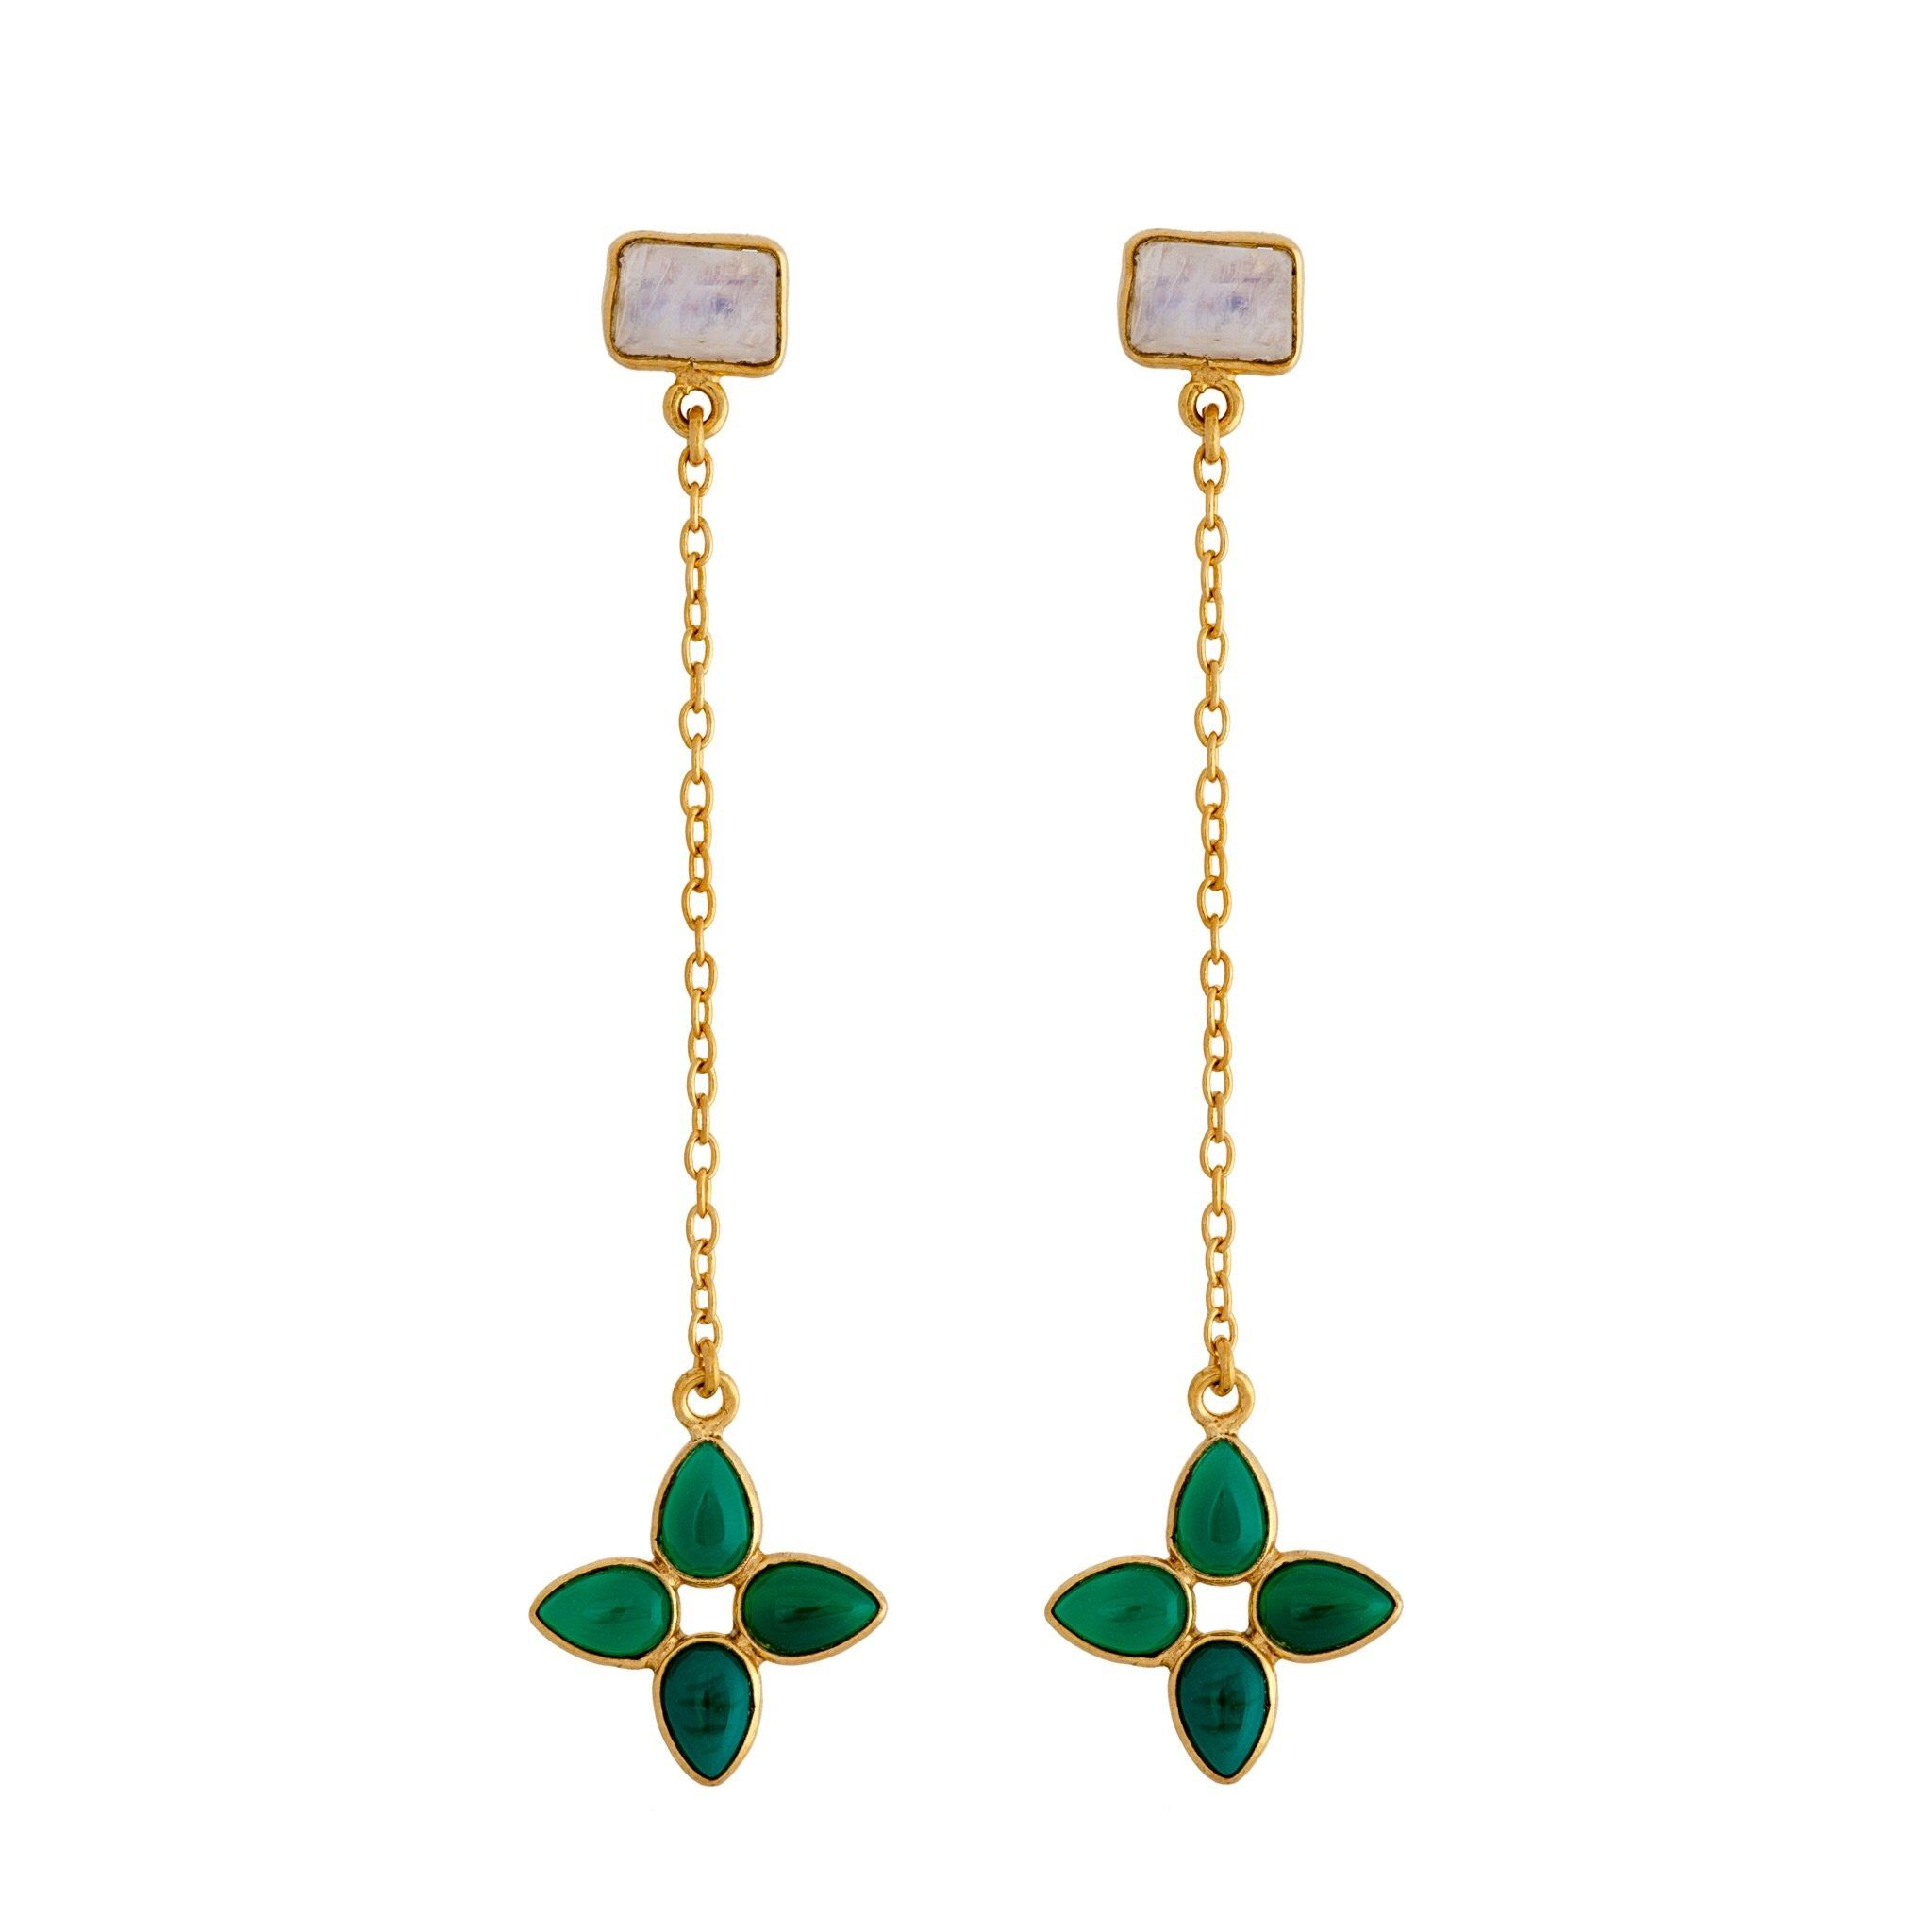 FLORA green onyx earrings - MadamSiam